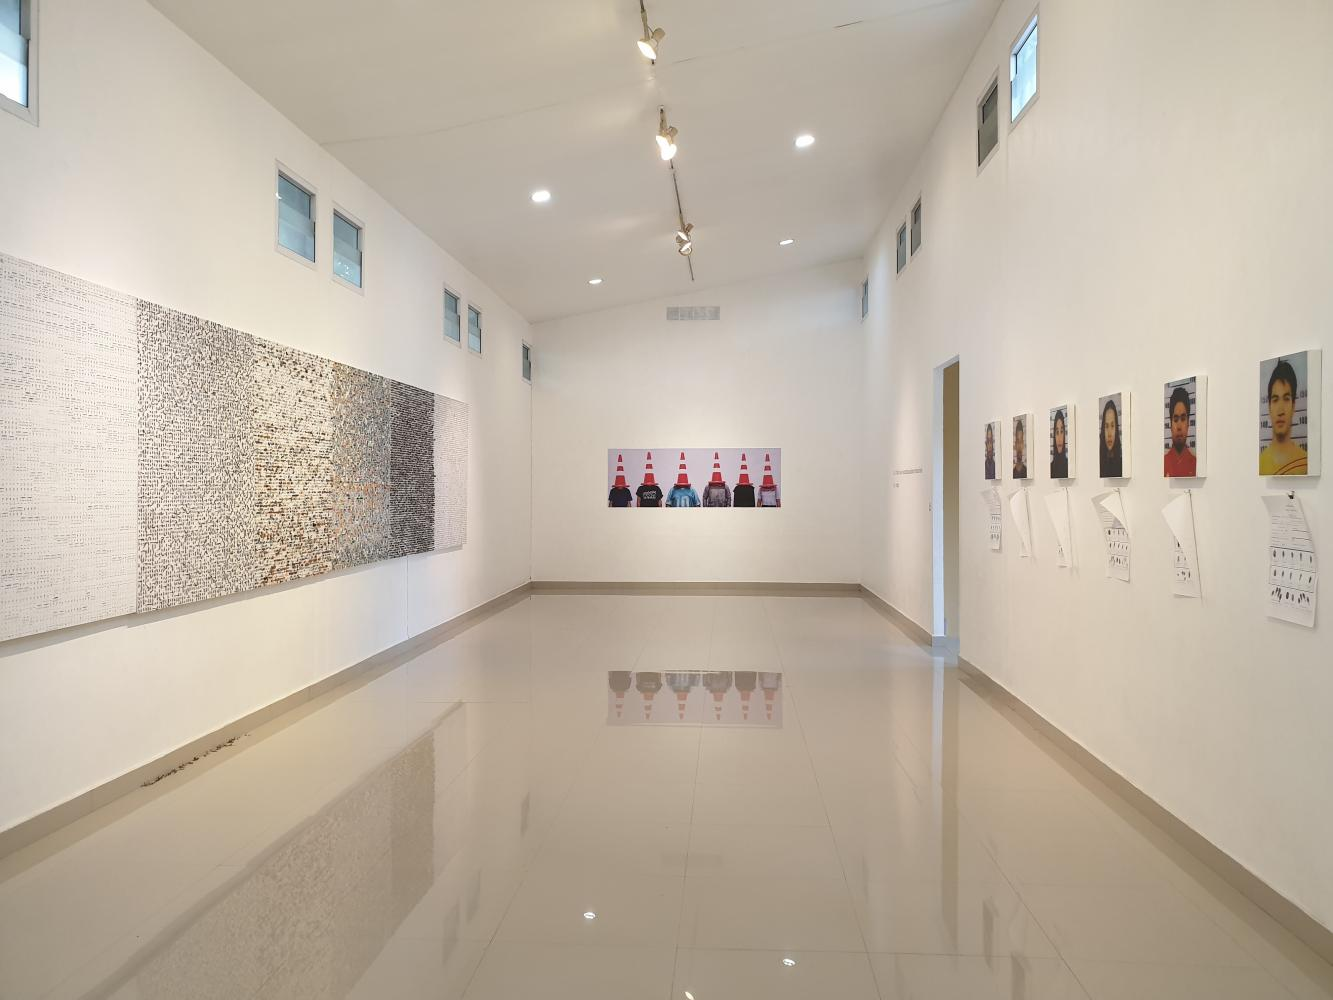 Works by young artists are on display at an exhibition opened last week at Patani Artspace in Pattani province. photo courtesy of Patani Artspace